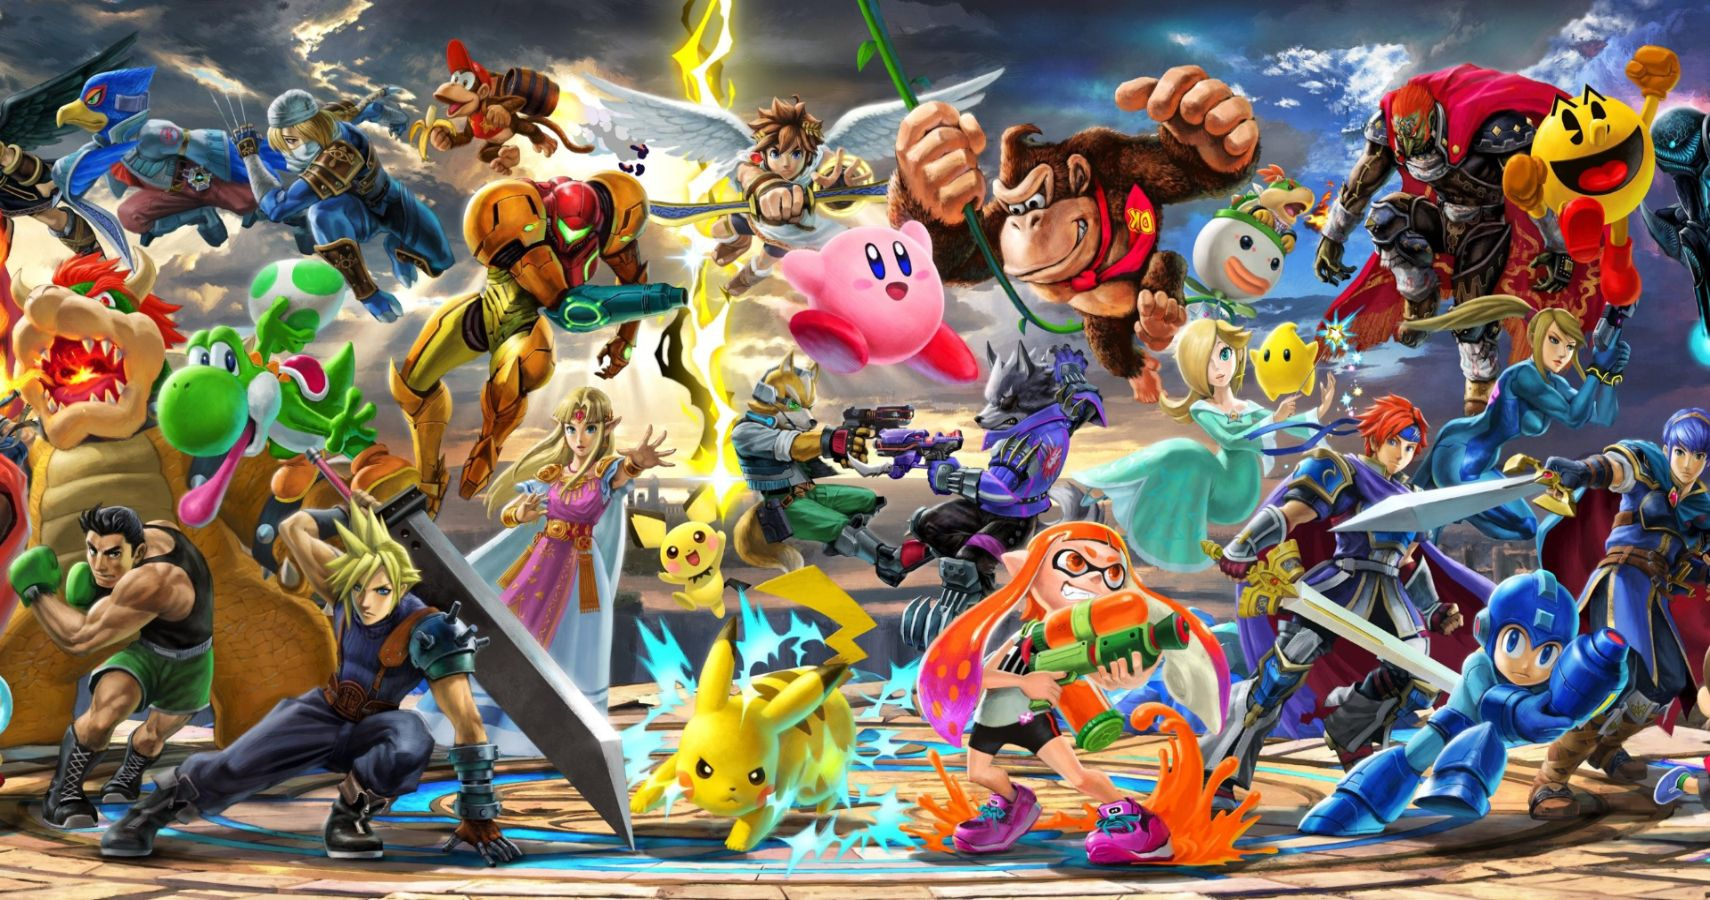 Smash Bros. Ultimate Tier List, Patch 3.1: The Best Fighters According To Top Players